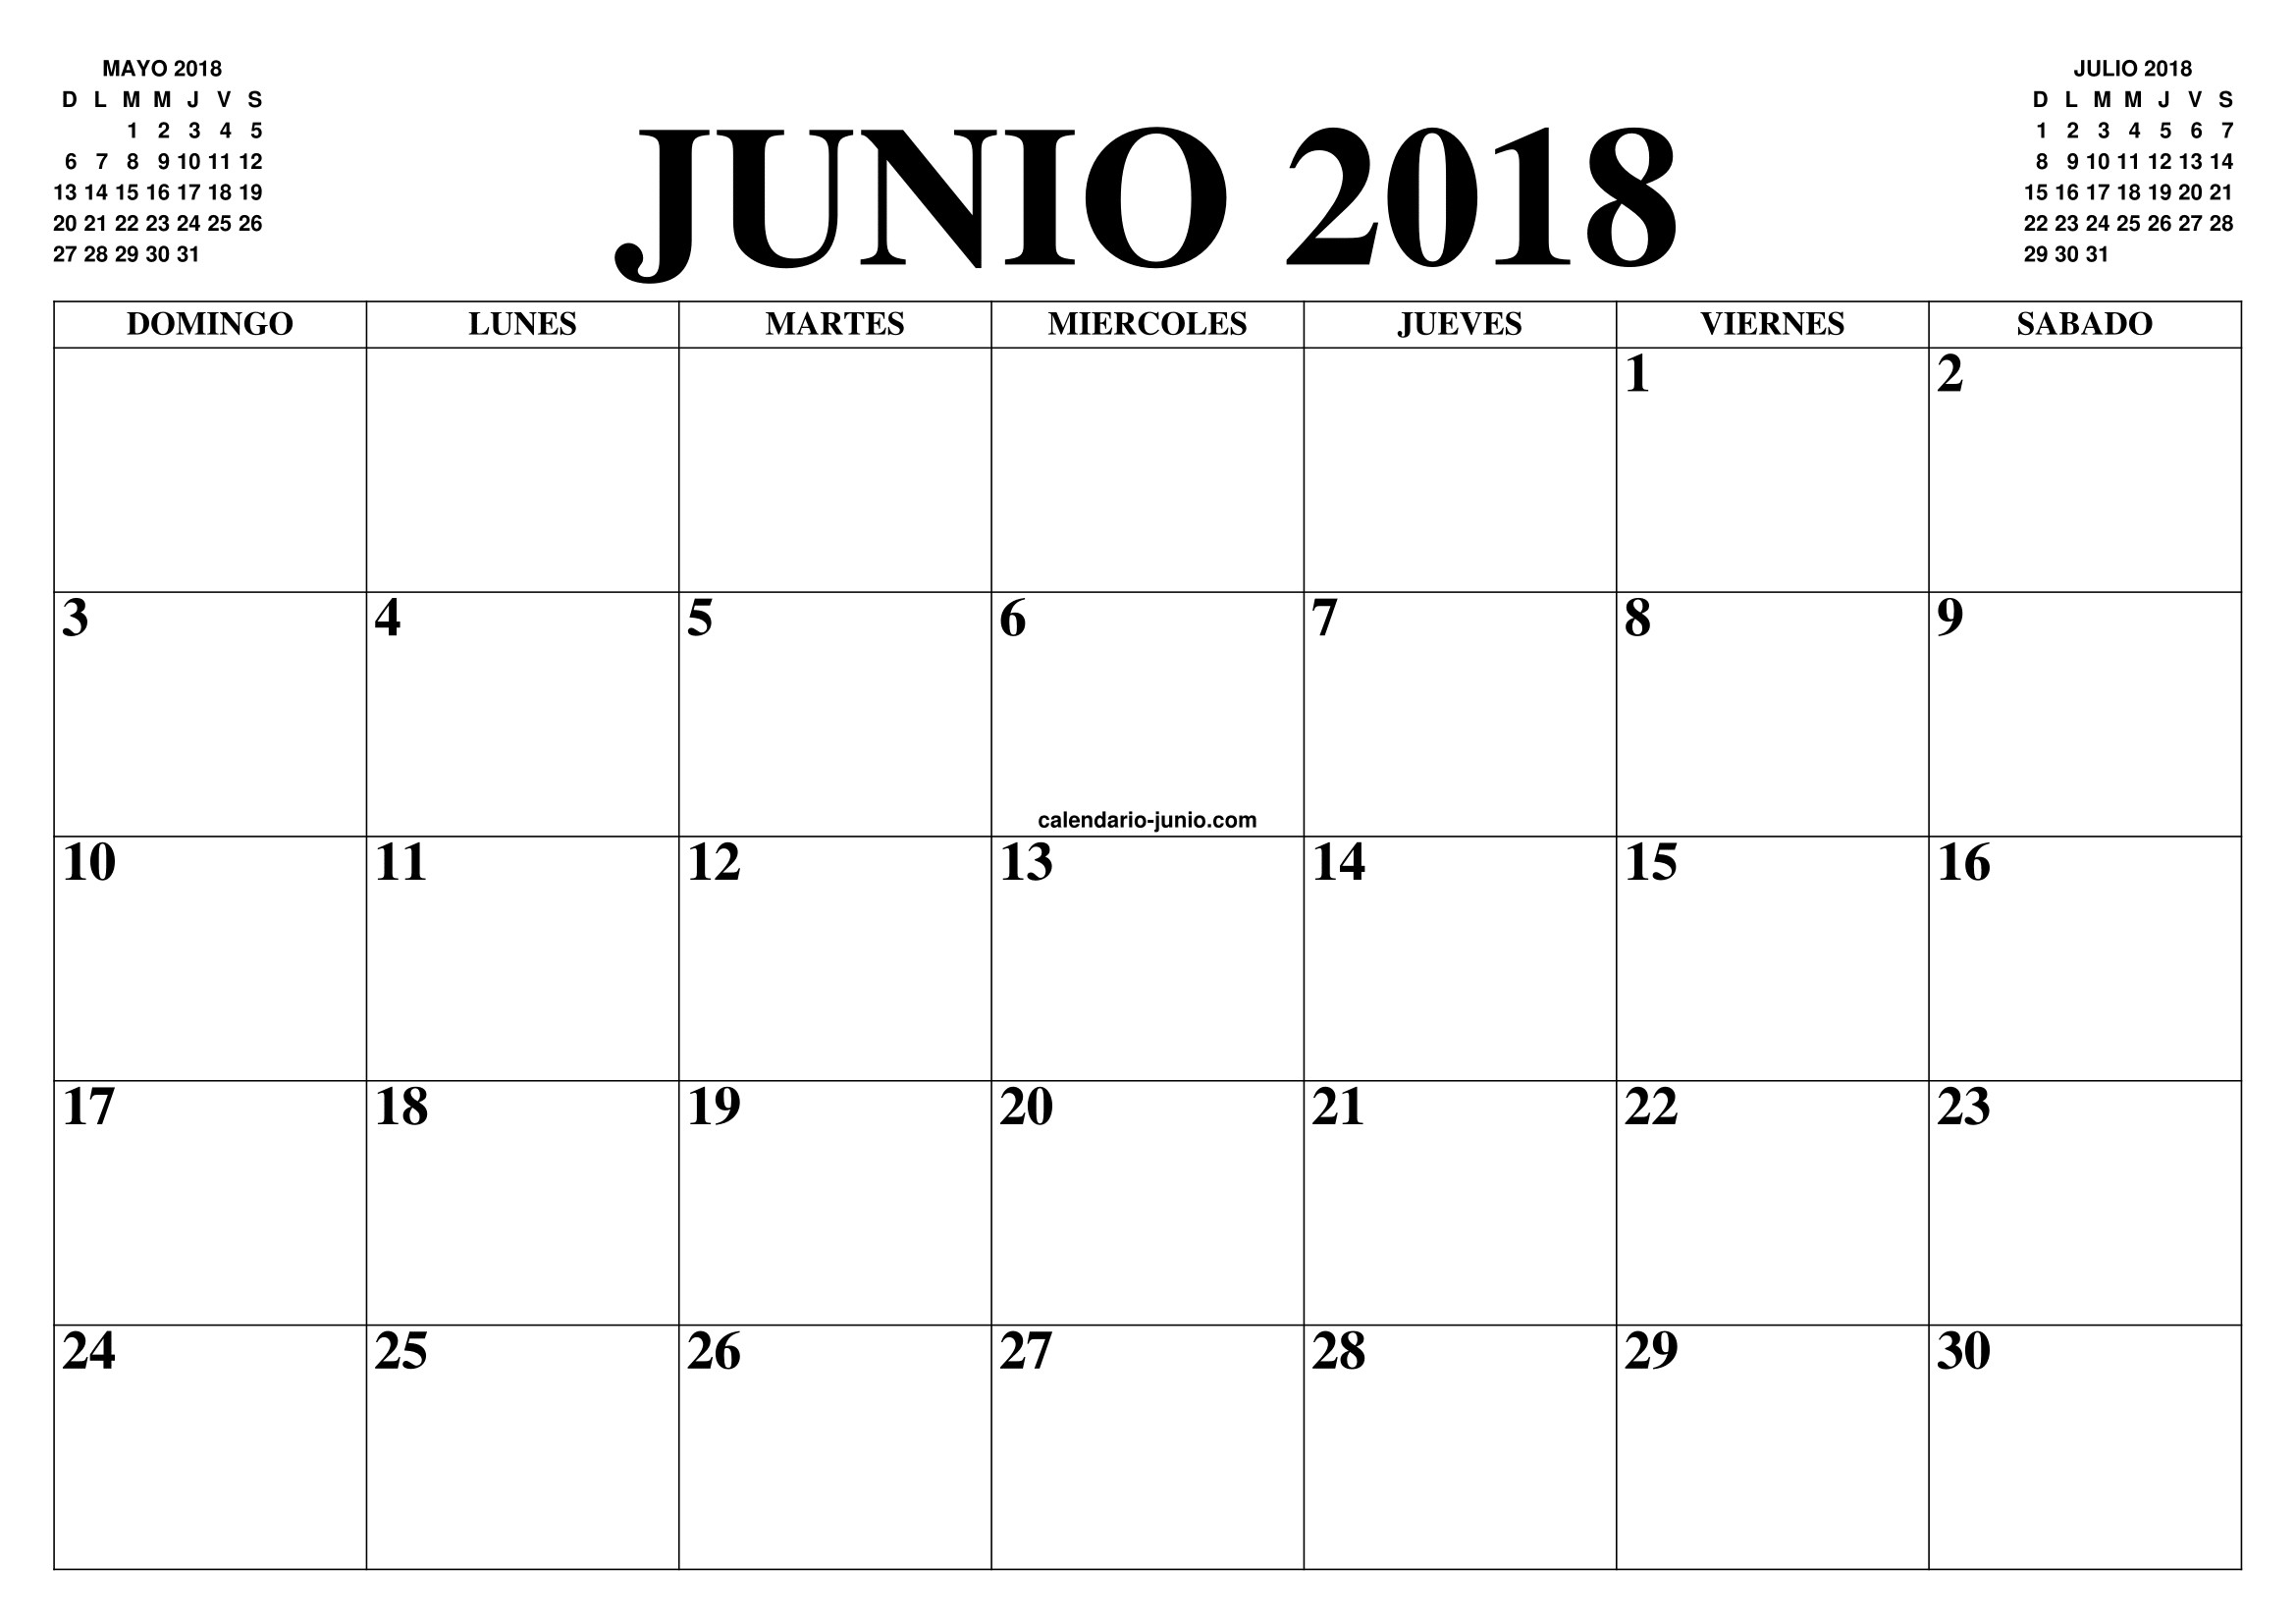 Calendario Argentina 2019 Para Imprimir Más Caliente Calendario Junio Related Keywords & Suggestions Calendario Junio Of Calendario Argentina 2019 Para Imprimir Recientes Eur Lex R2454 En Eur Lex